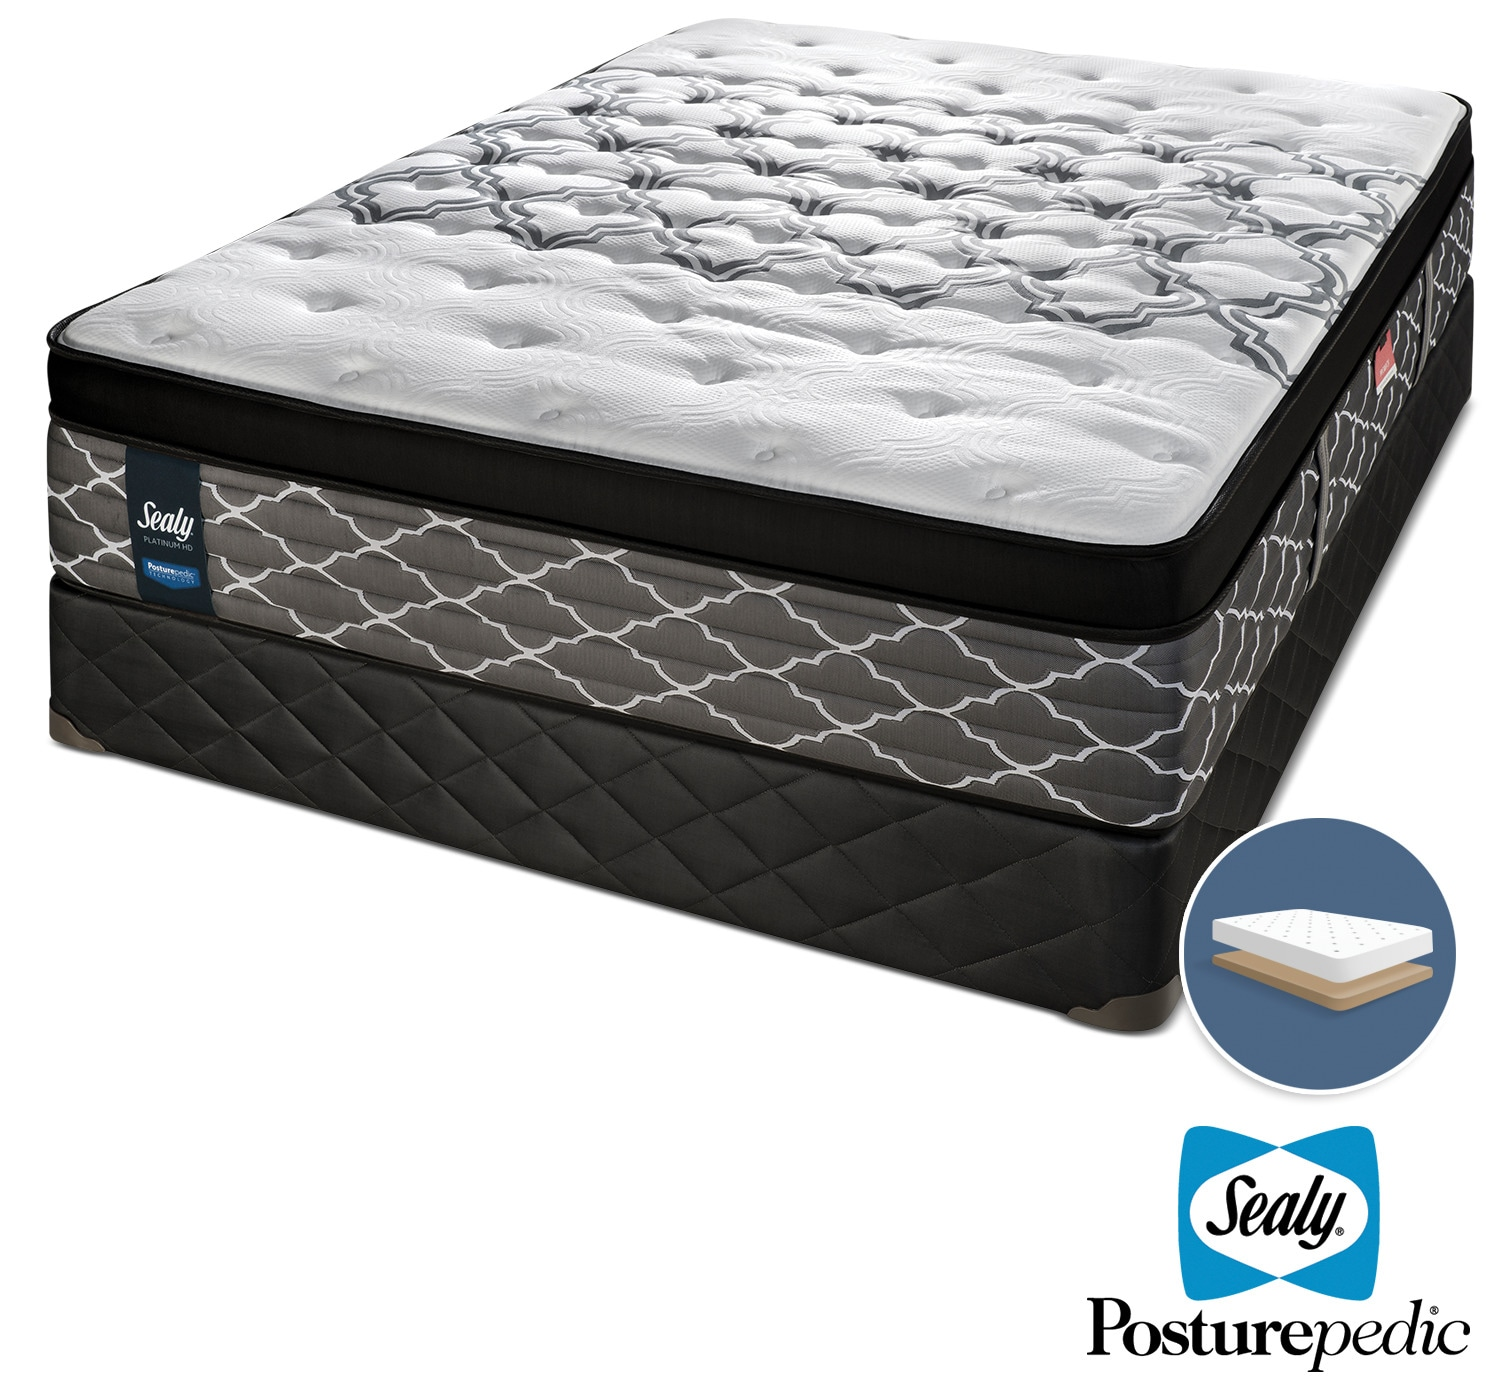 Mattresses and Bedding - Sealy Dreamy Night Hybrid Firm Queen Mattress and Low-Profile Boxspring Set